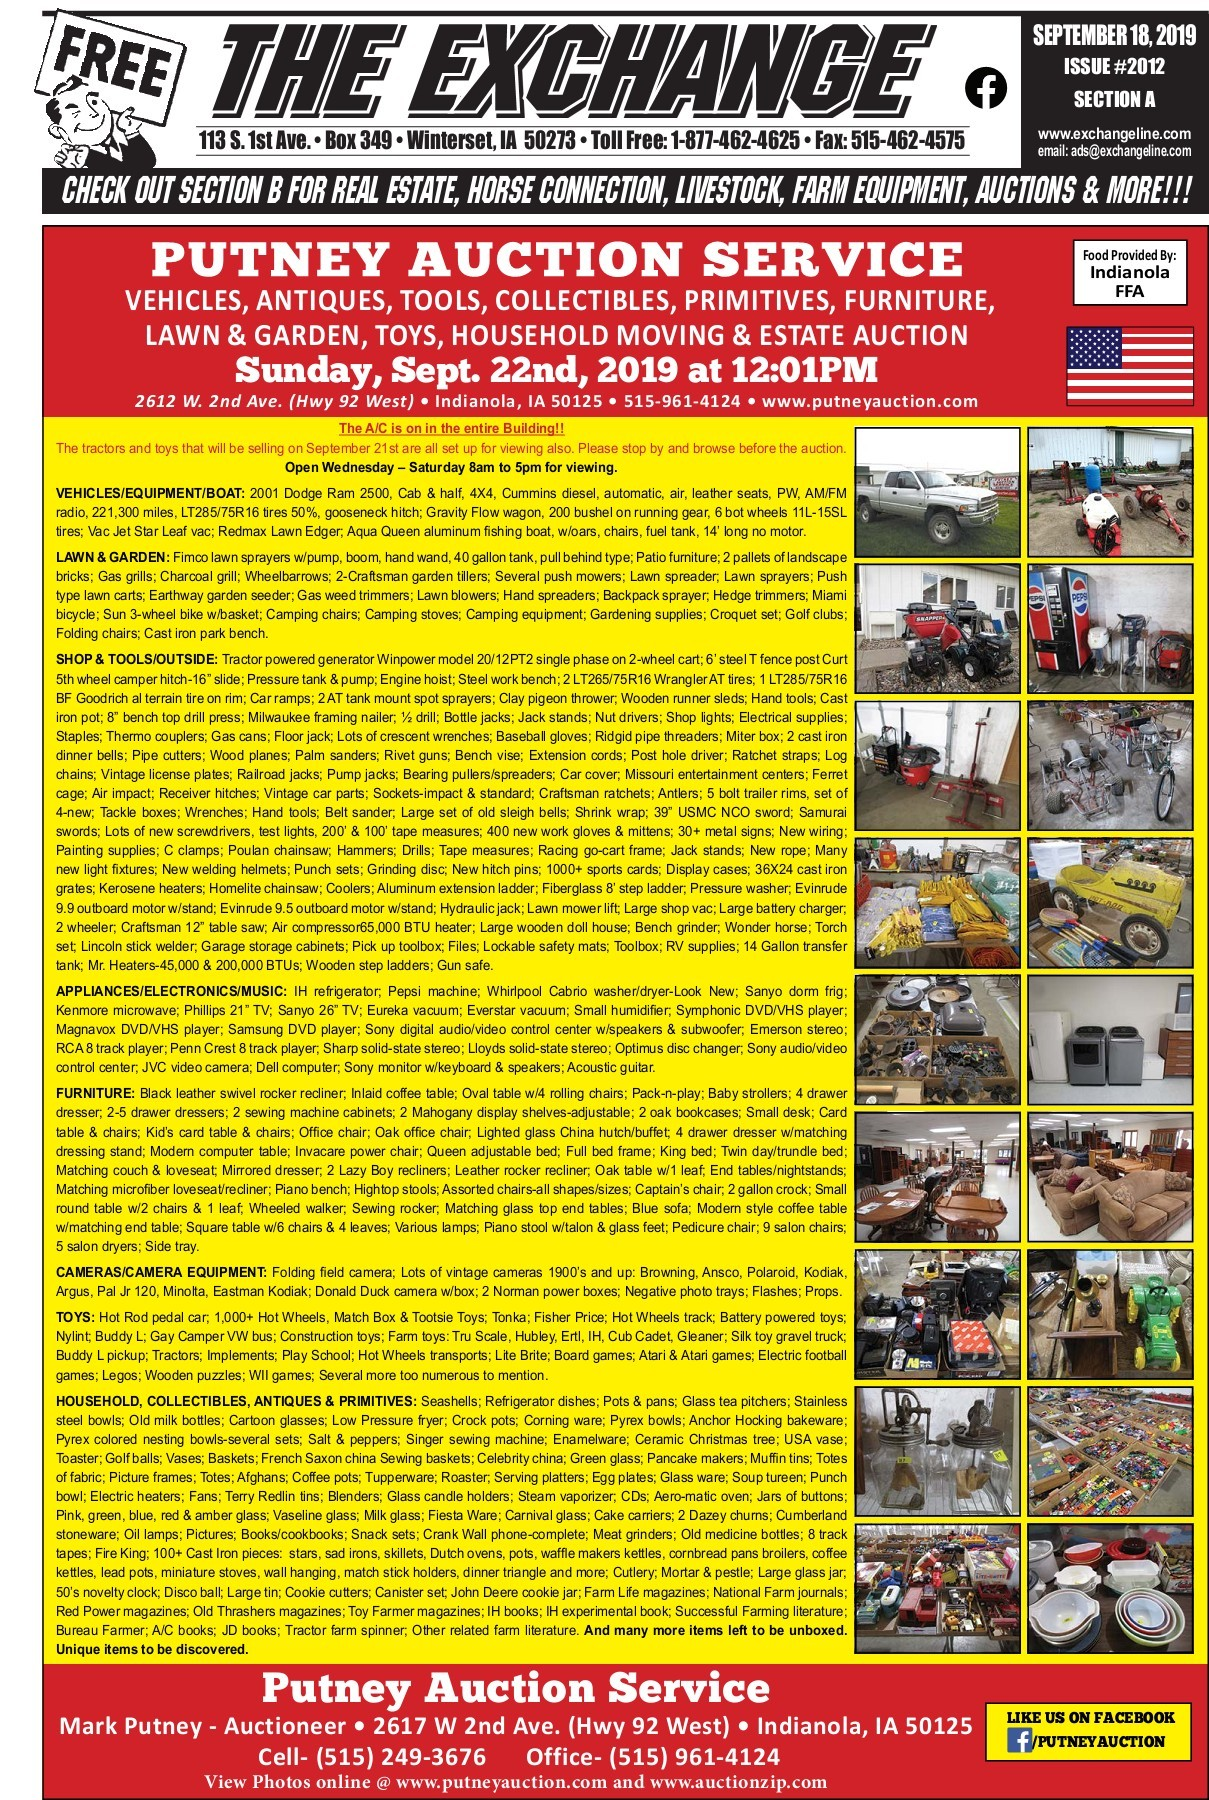 Traeger Green and Yellow Wire 2012 Sept 18 2019 Exchange Newspaper Eedition Pages 1 32 Of Traeger Green and Yellow Wire